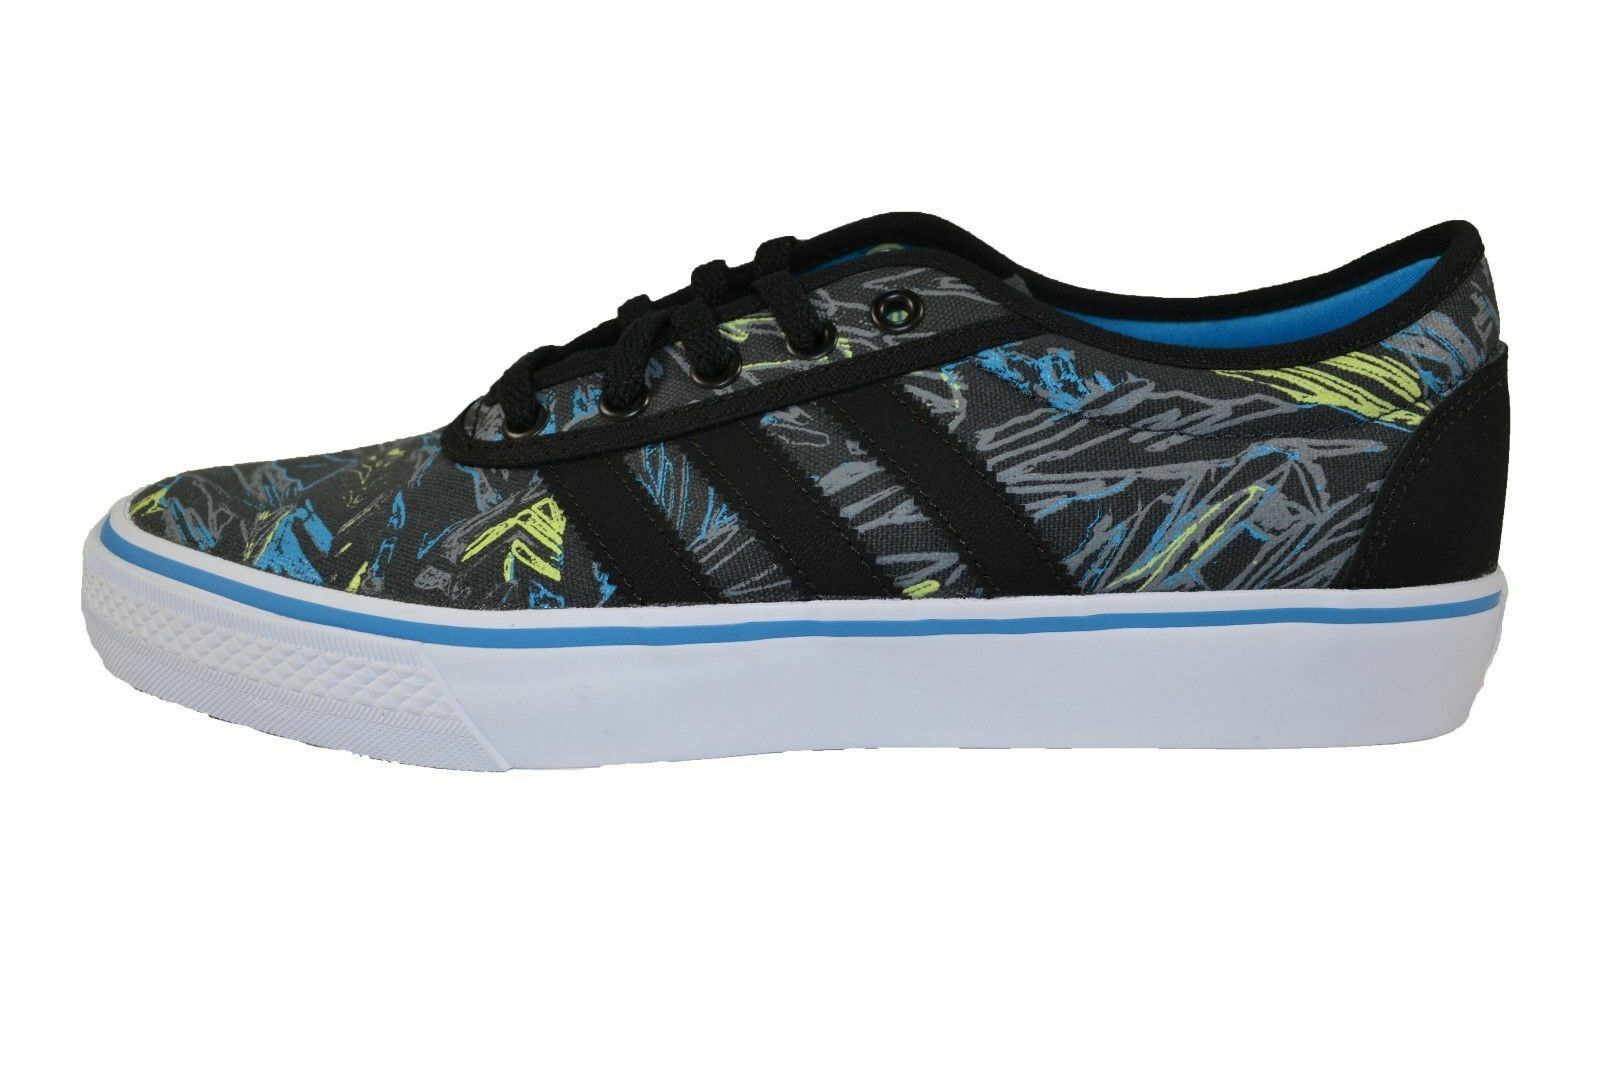 Adidas ADI-EASE Dark Shale Blue Glow Discounted Price reduction Skateboarding Men's Shoes The most popular shoes for men and women